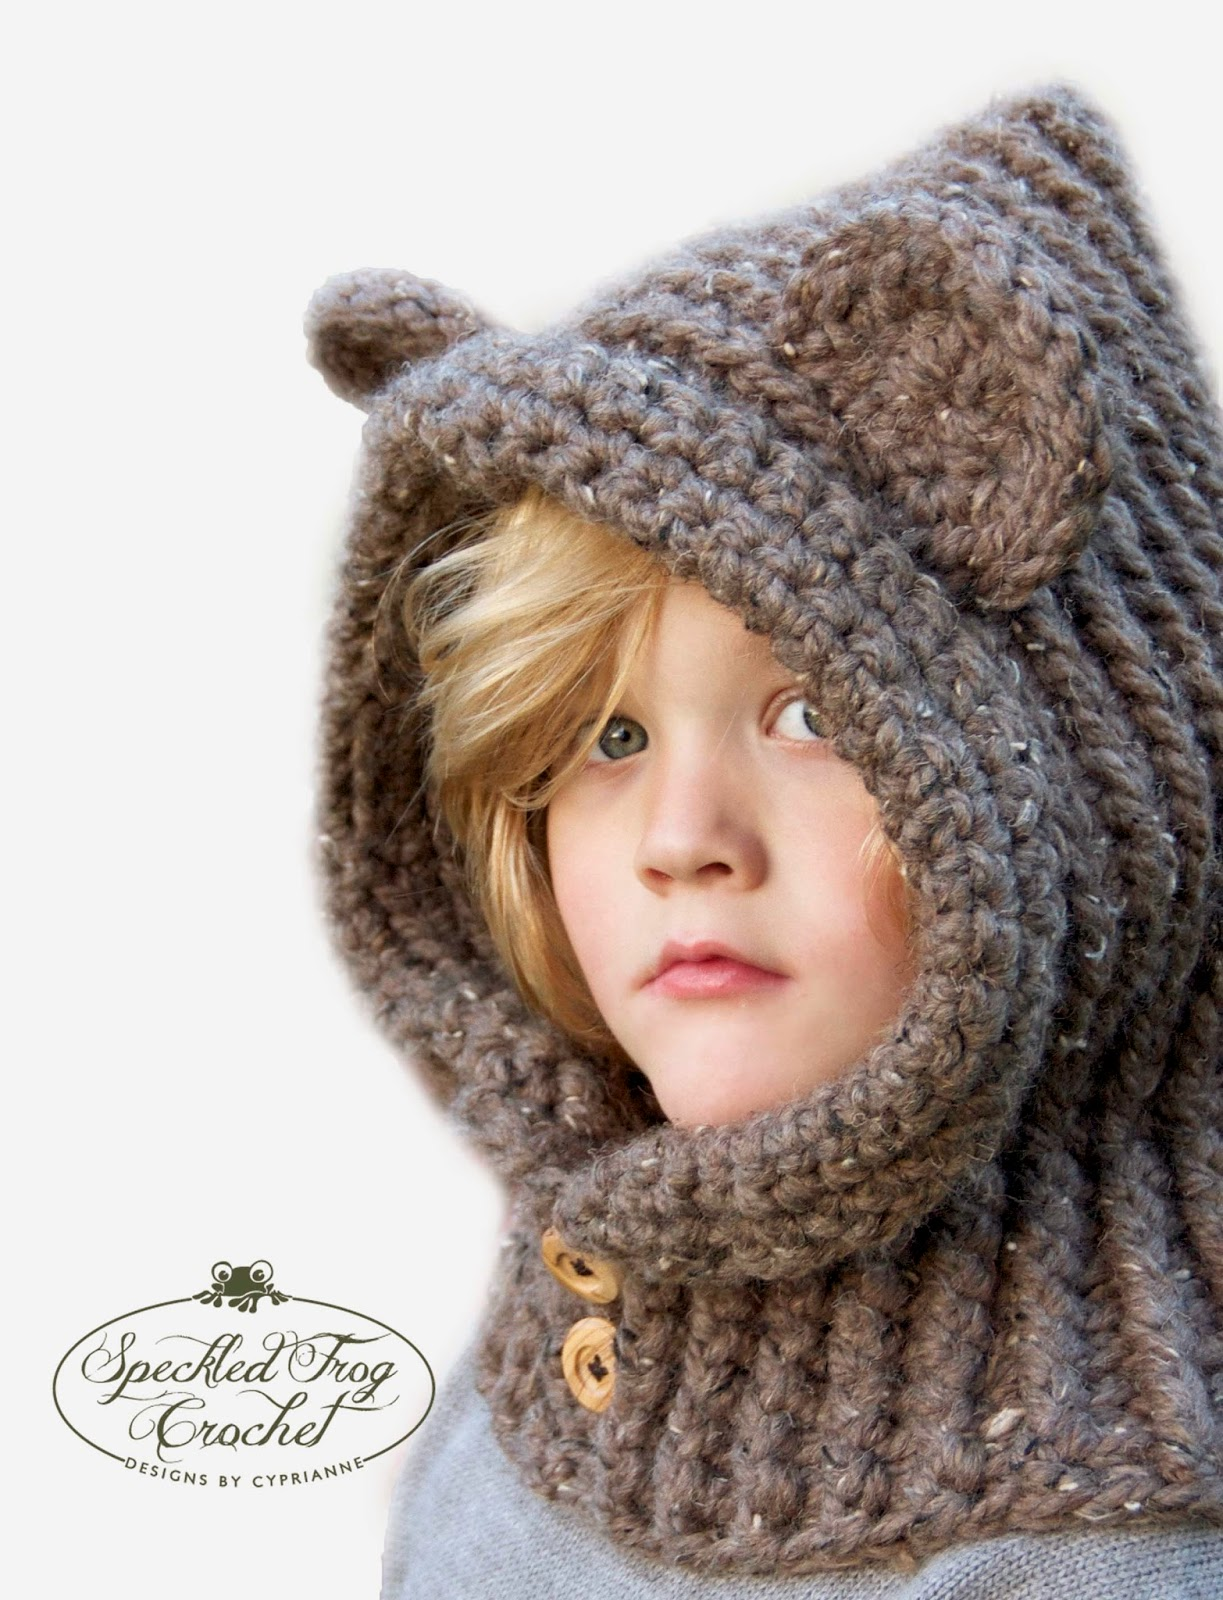 Pretty darn adorable crochet crochet hooded bear cowl pattern bankloansurffo Gallery